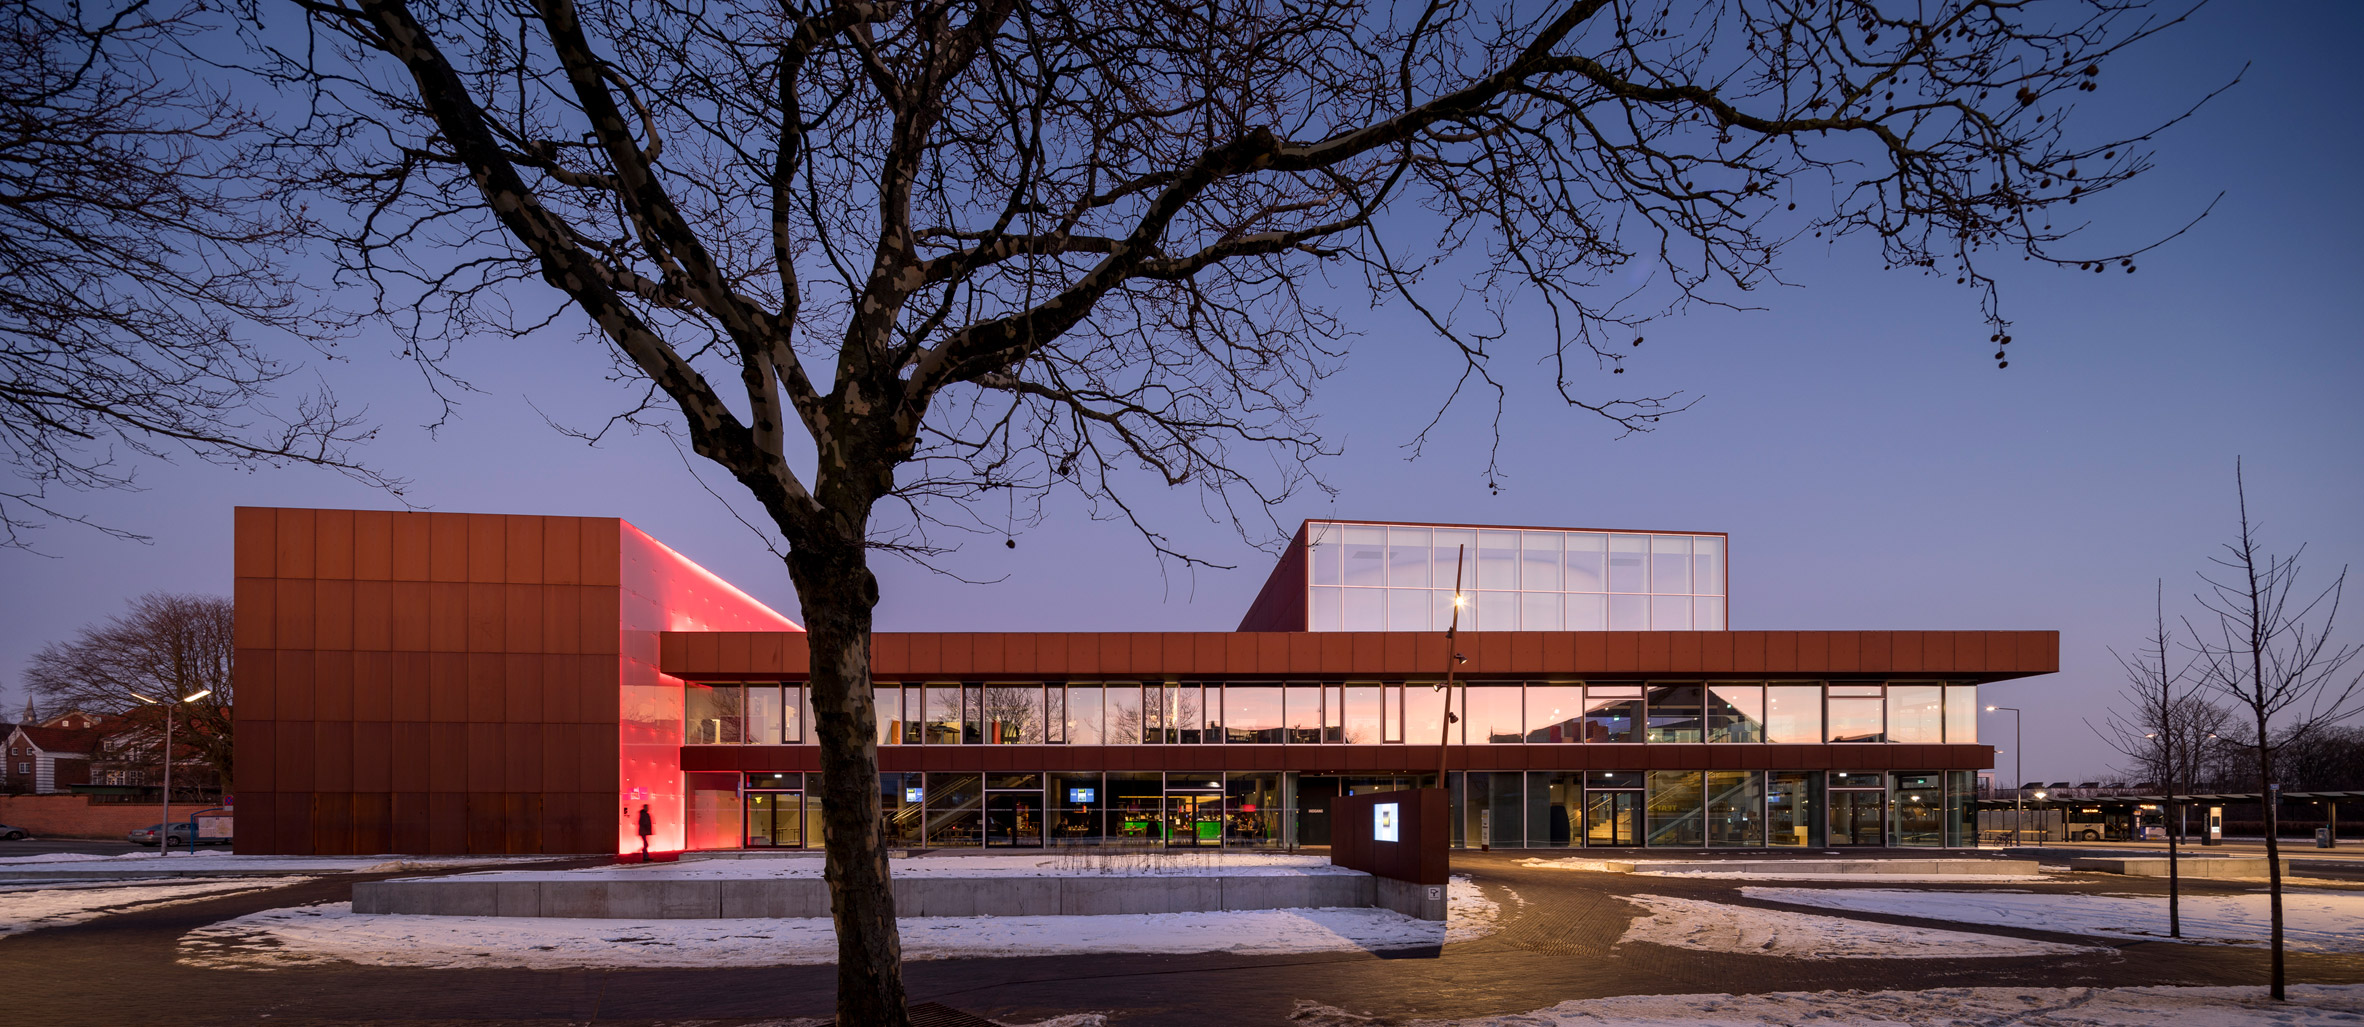 Schmidt Hammer Lassen pairs frosted glass with weathering steel for Vendsyssel Theatre